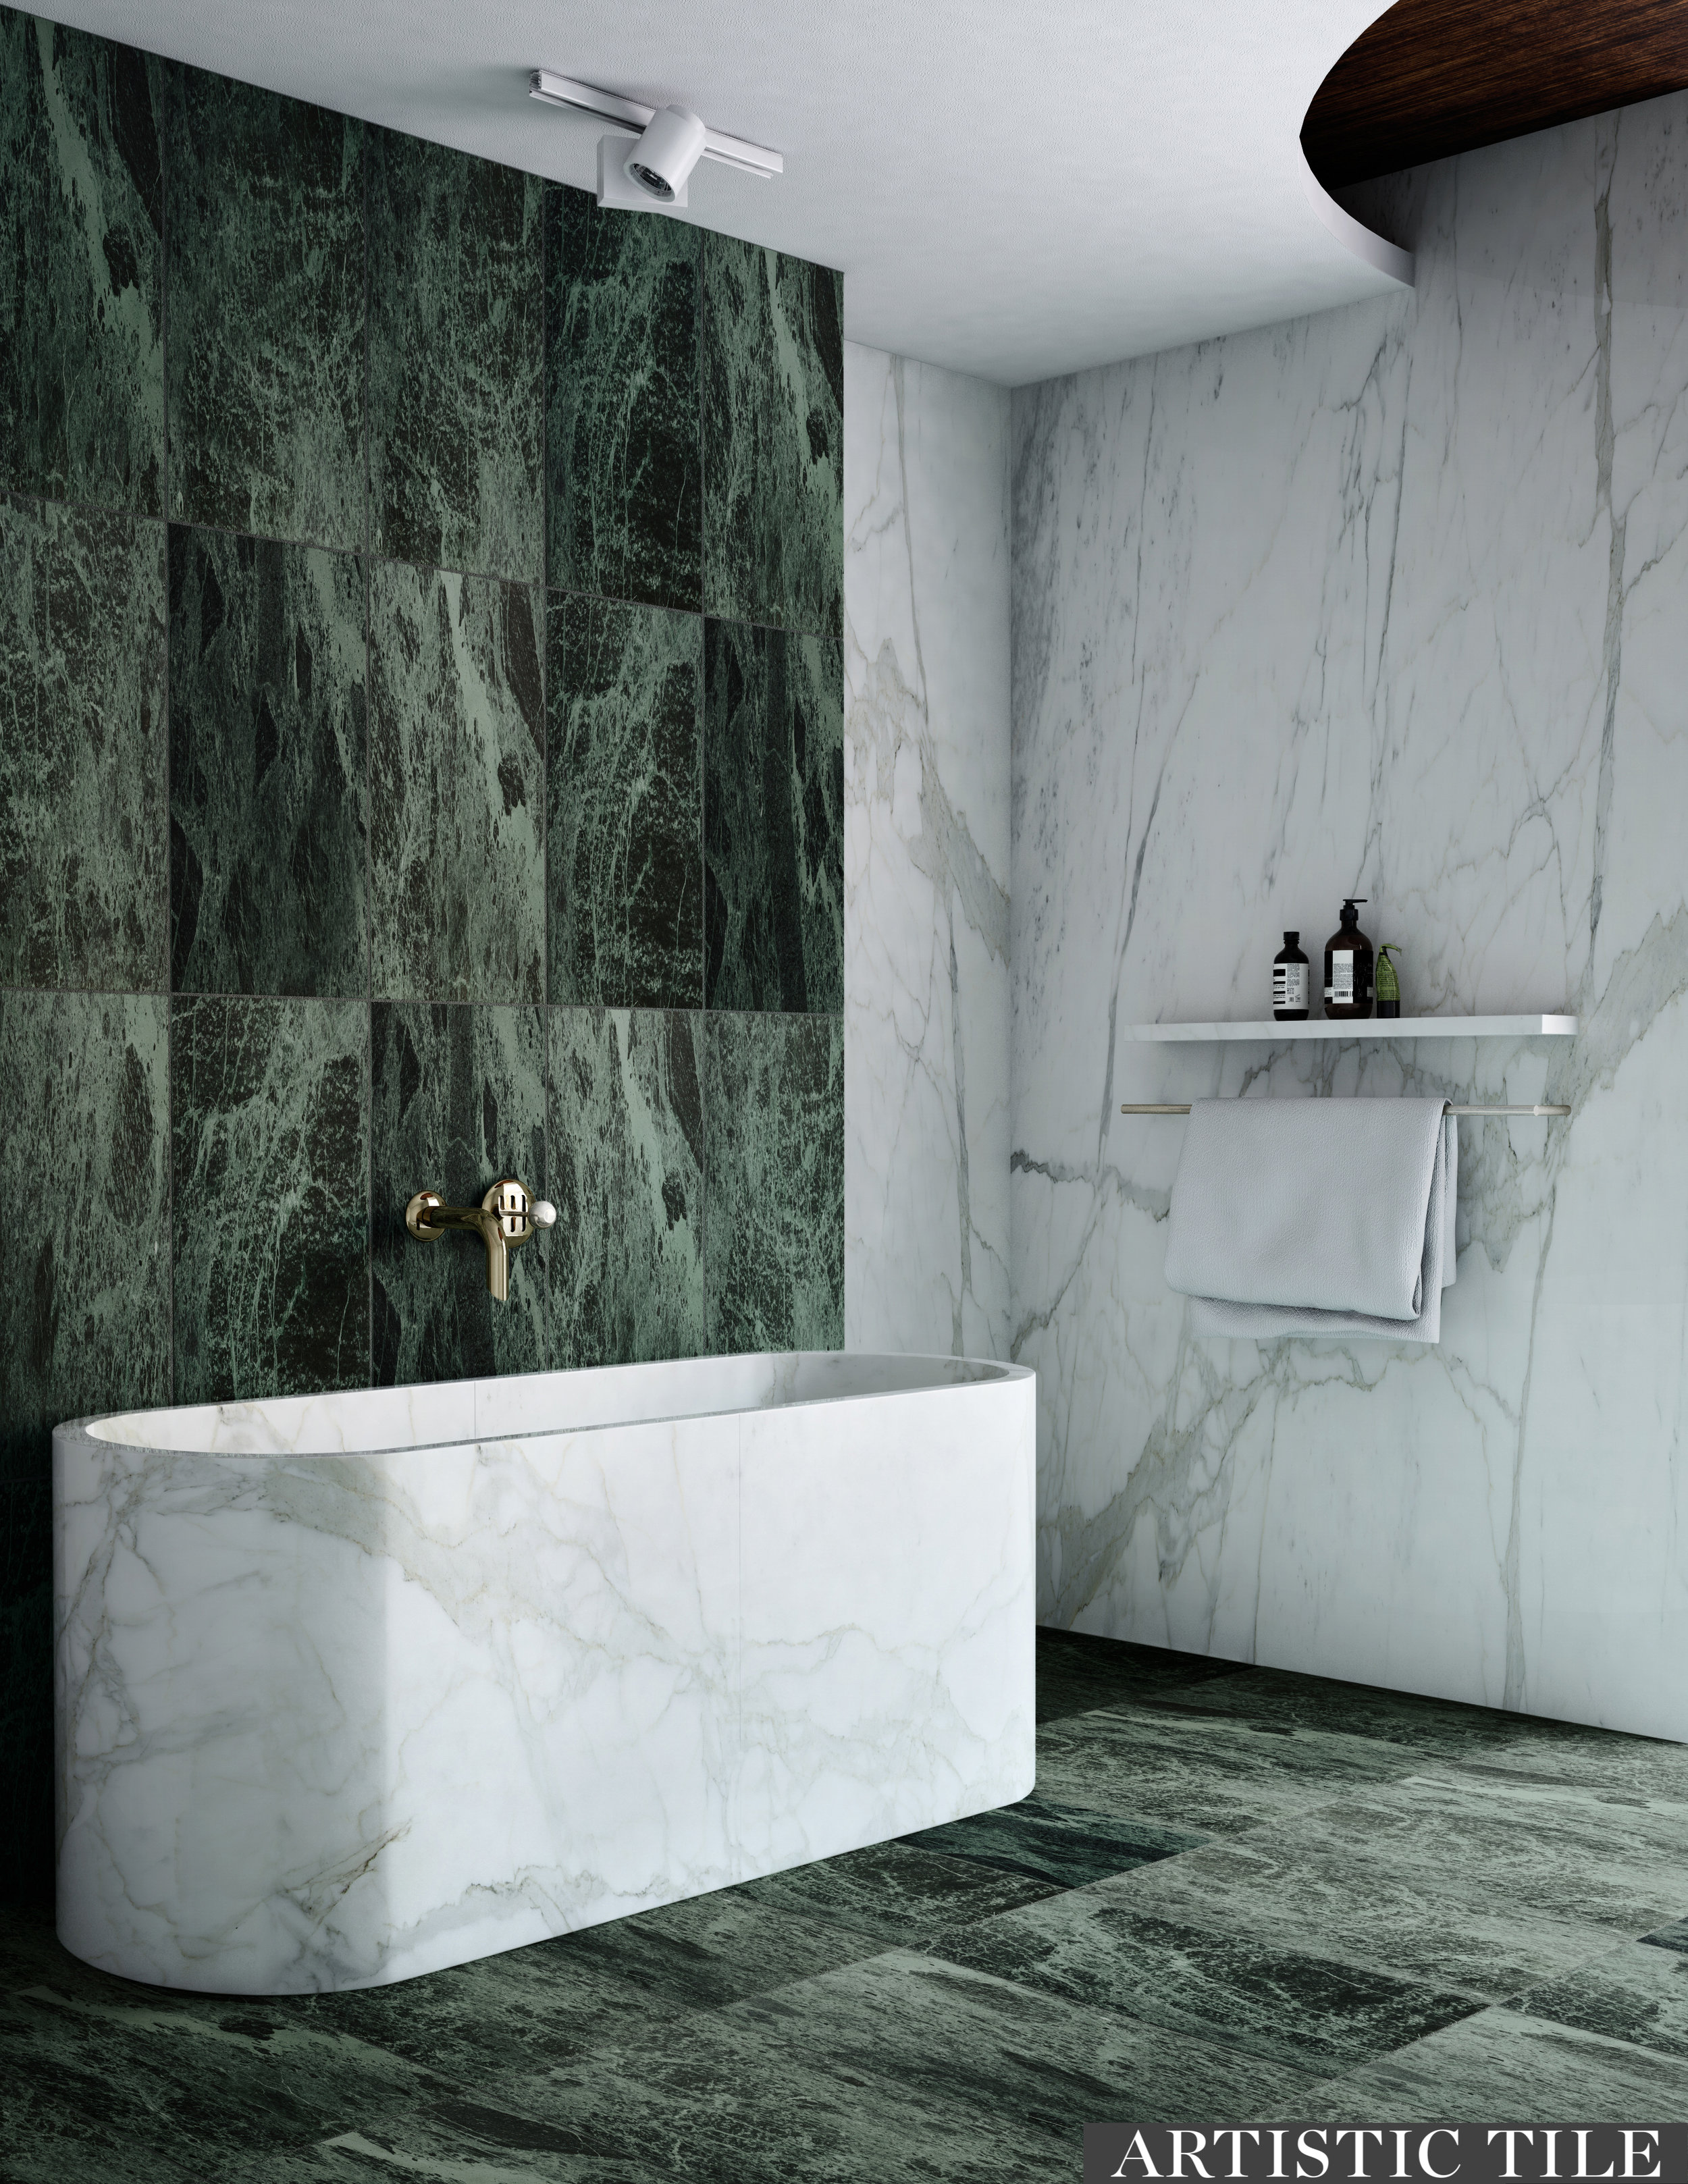 ART - Artistic -Verde Alpi - Natural Stone - Bathroom.jpg